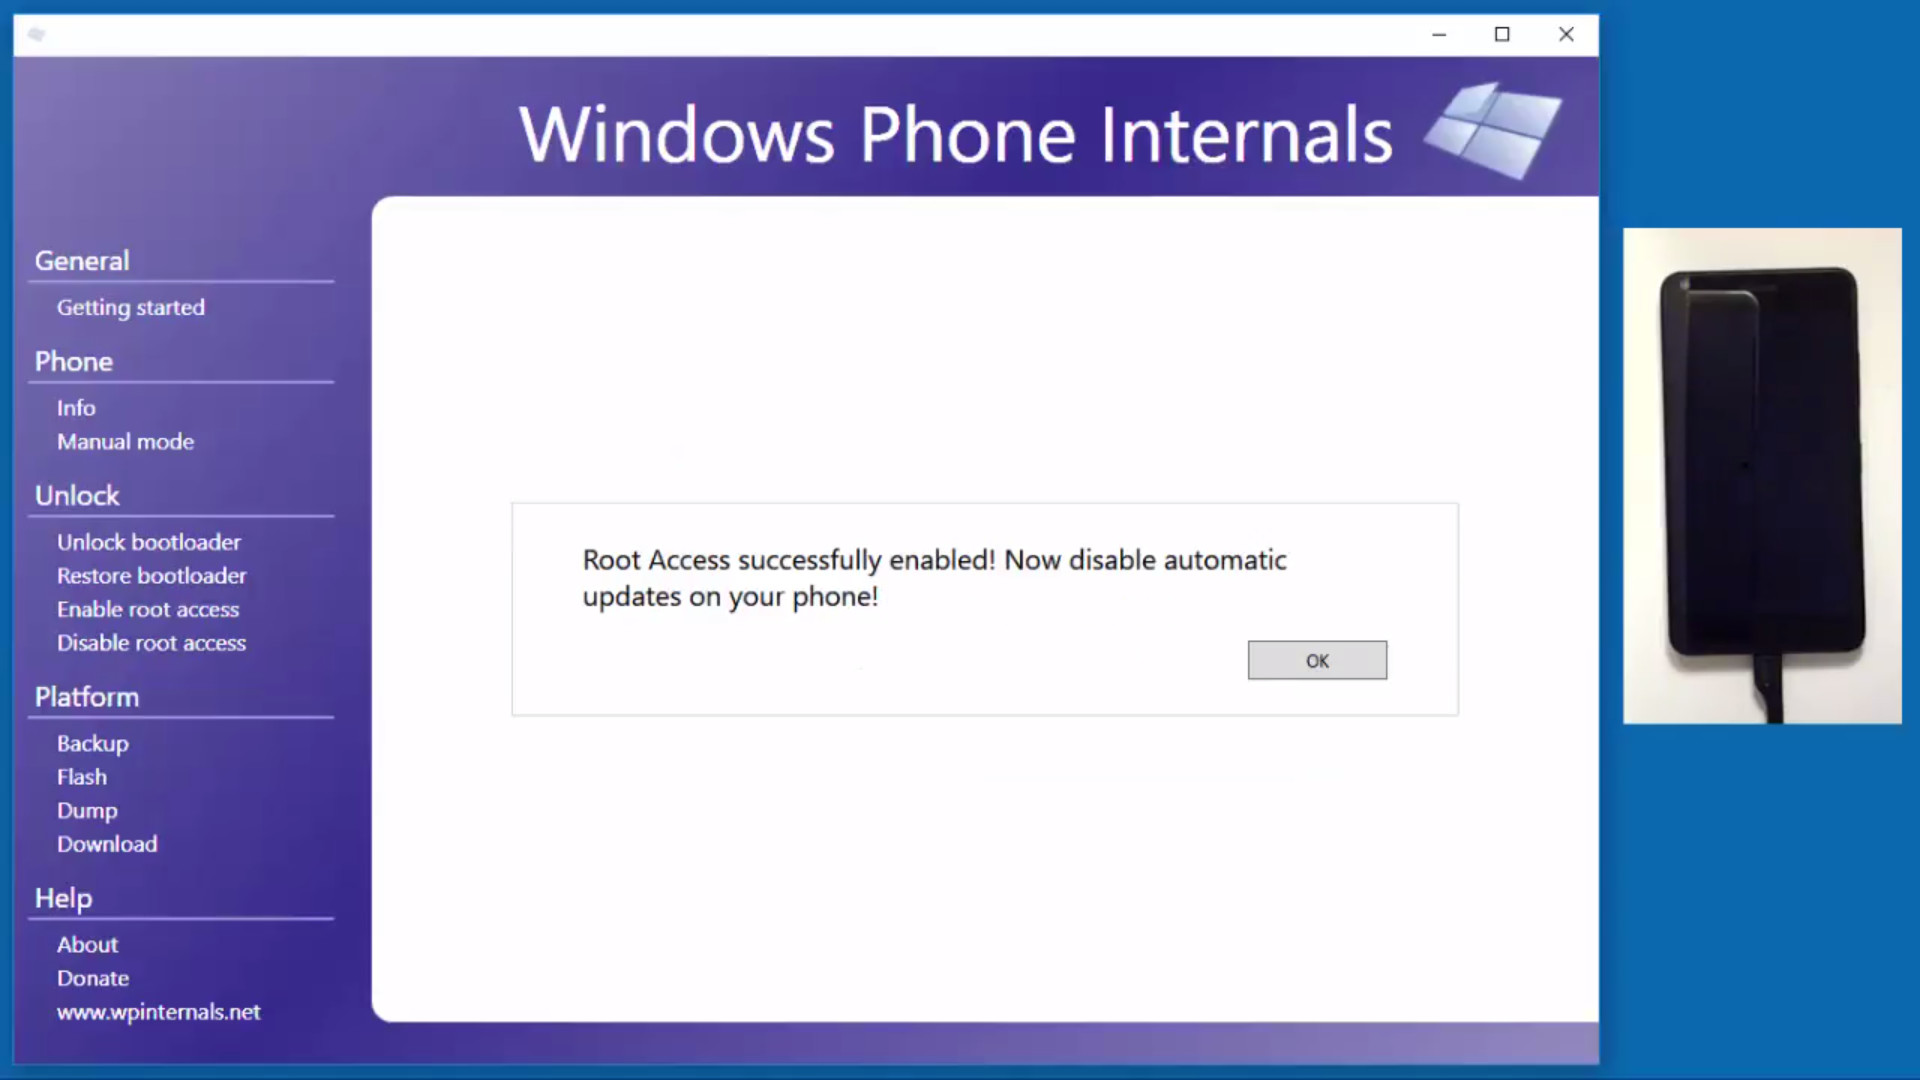 Windows Phone Internals allow for installation of custom ROMs on any